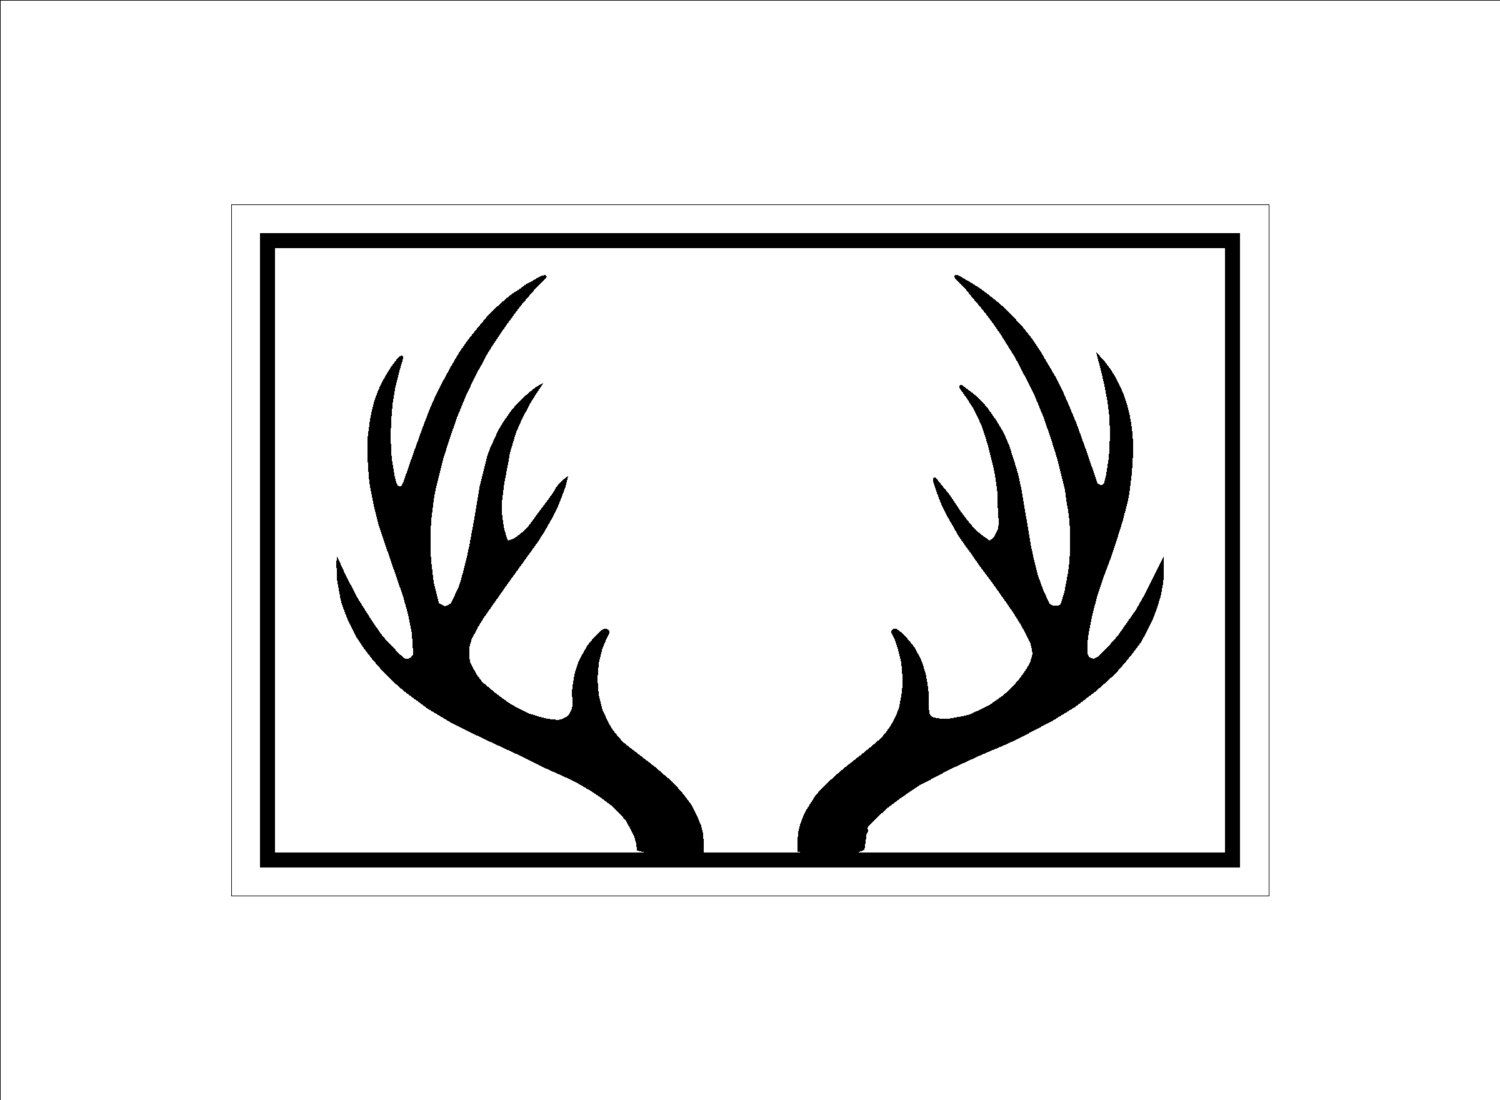 photograph relating to Printable Deer Antlers identified as printable deer antlers pinterest - Google Seem Freebies